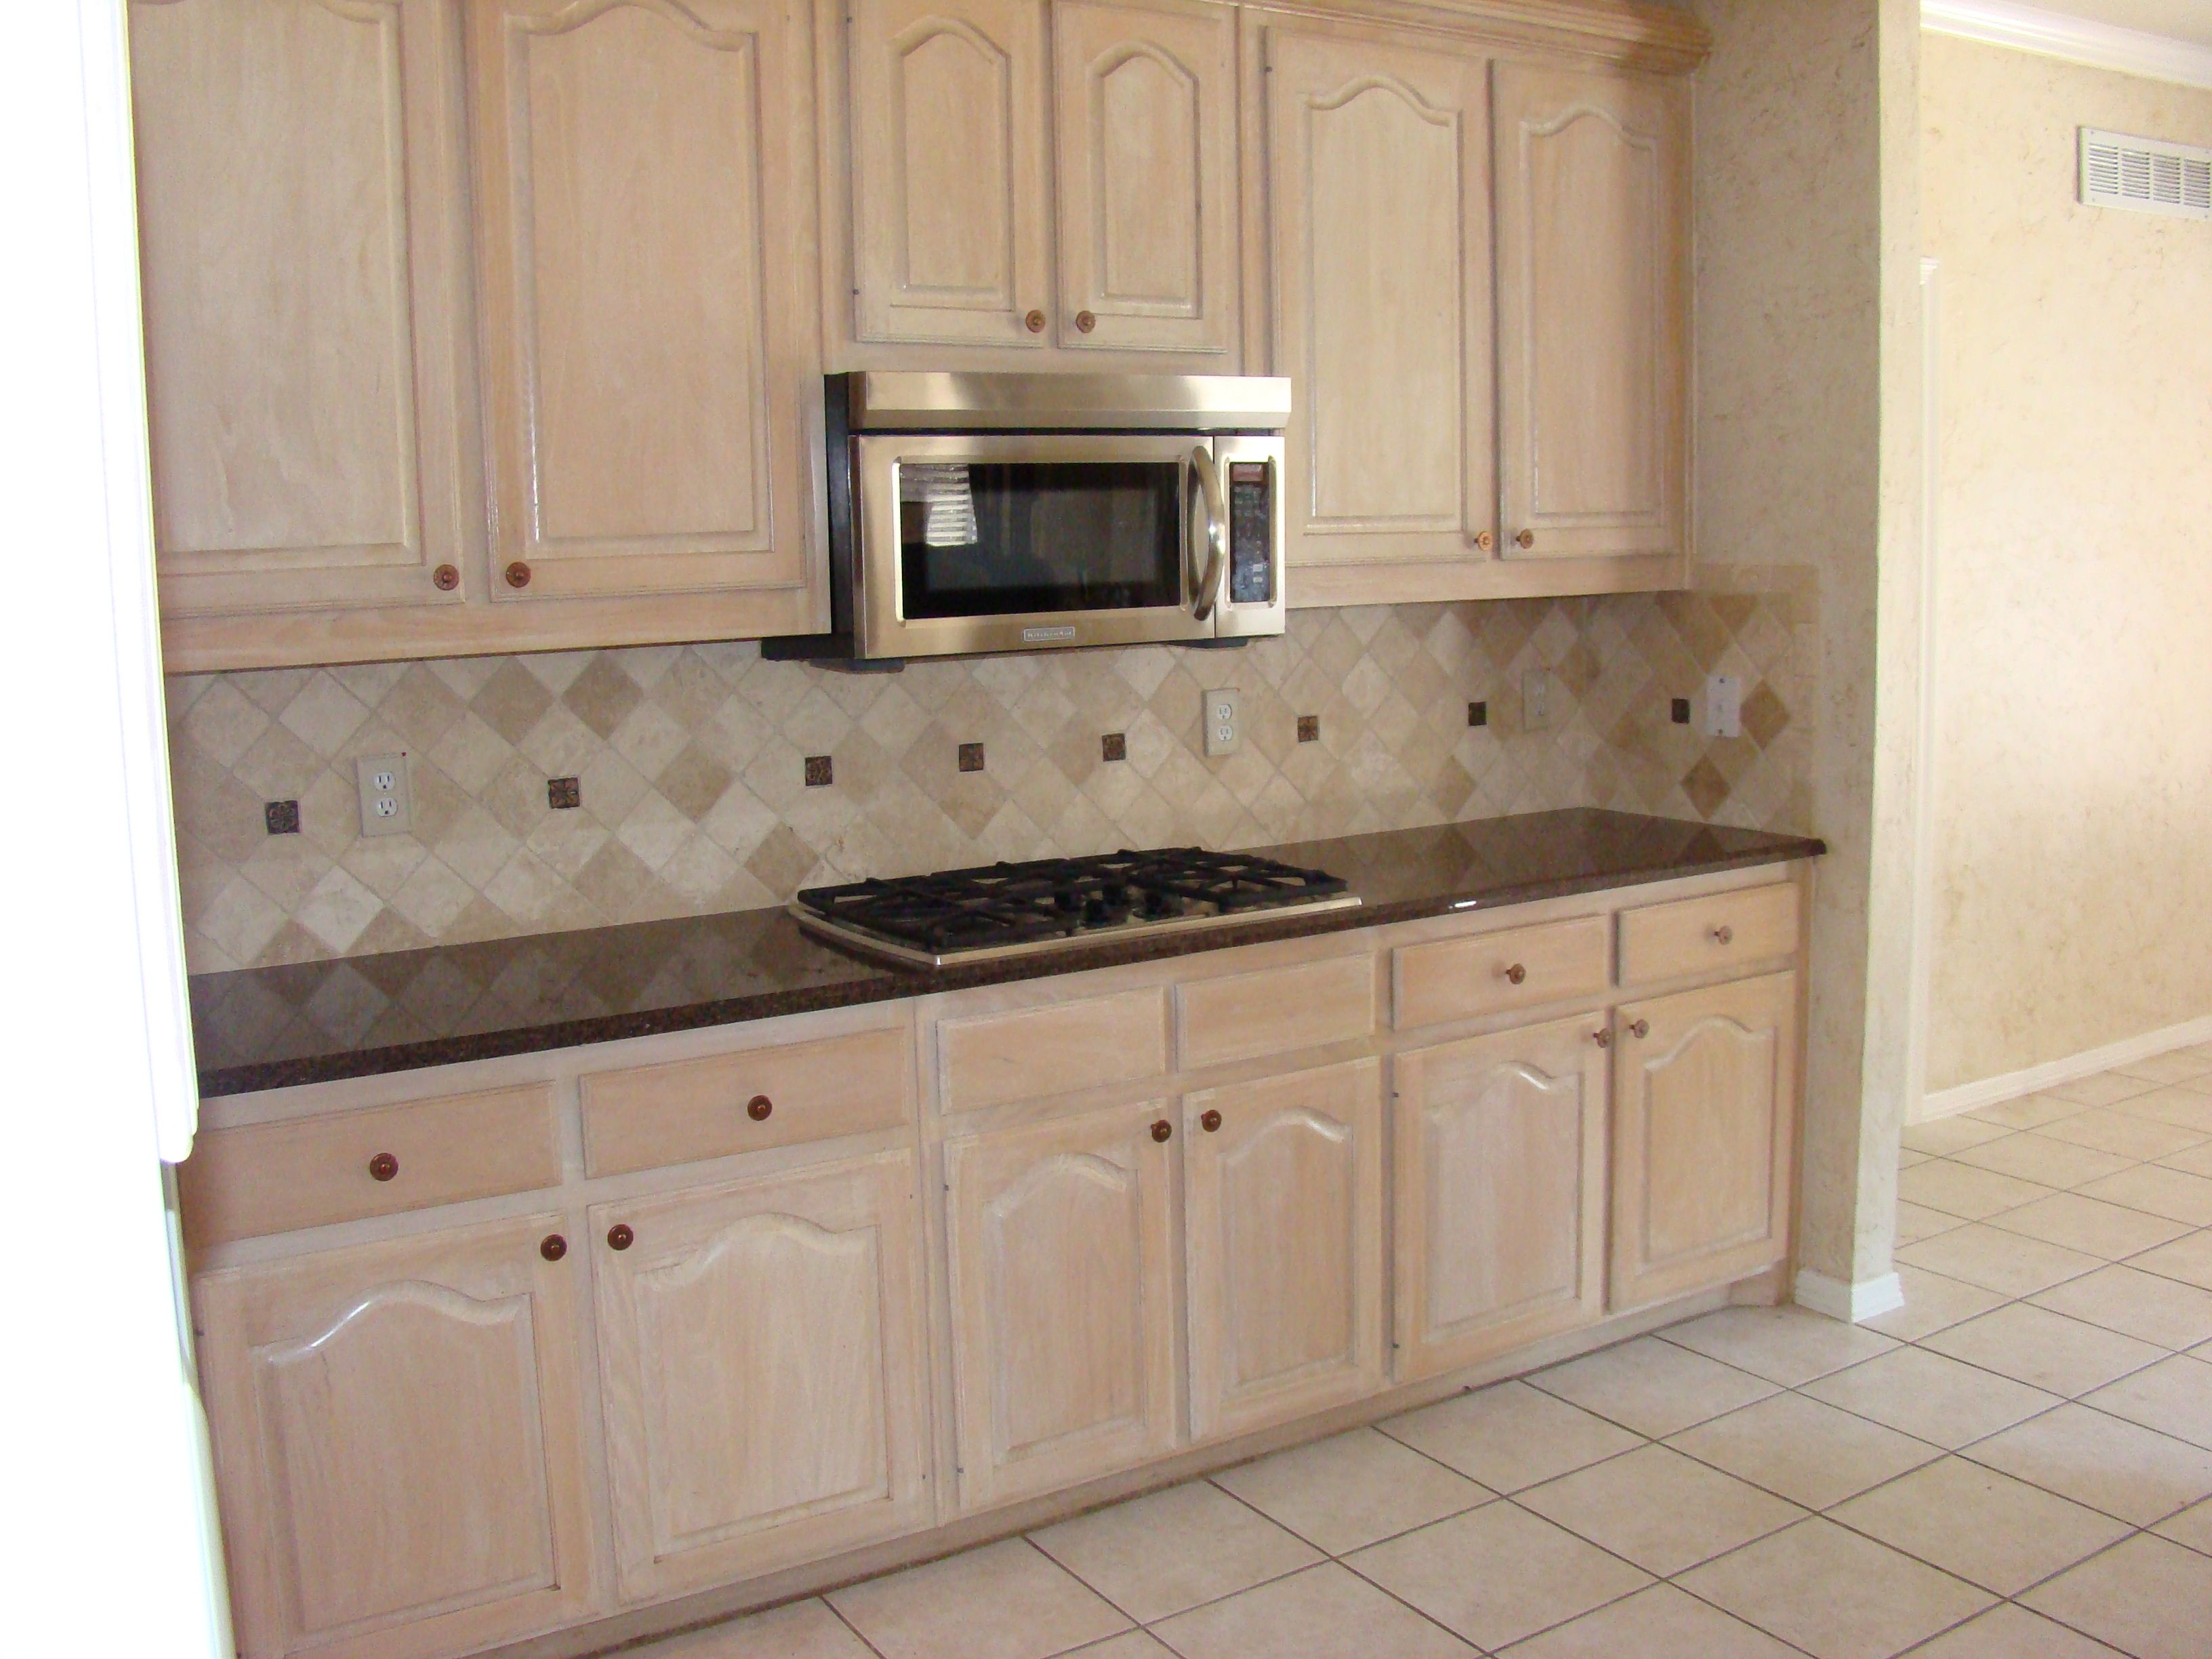 Kitchens With Pickled Oak Cabinets Kitchen Remodel